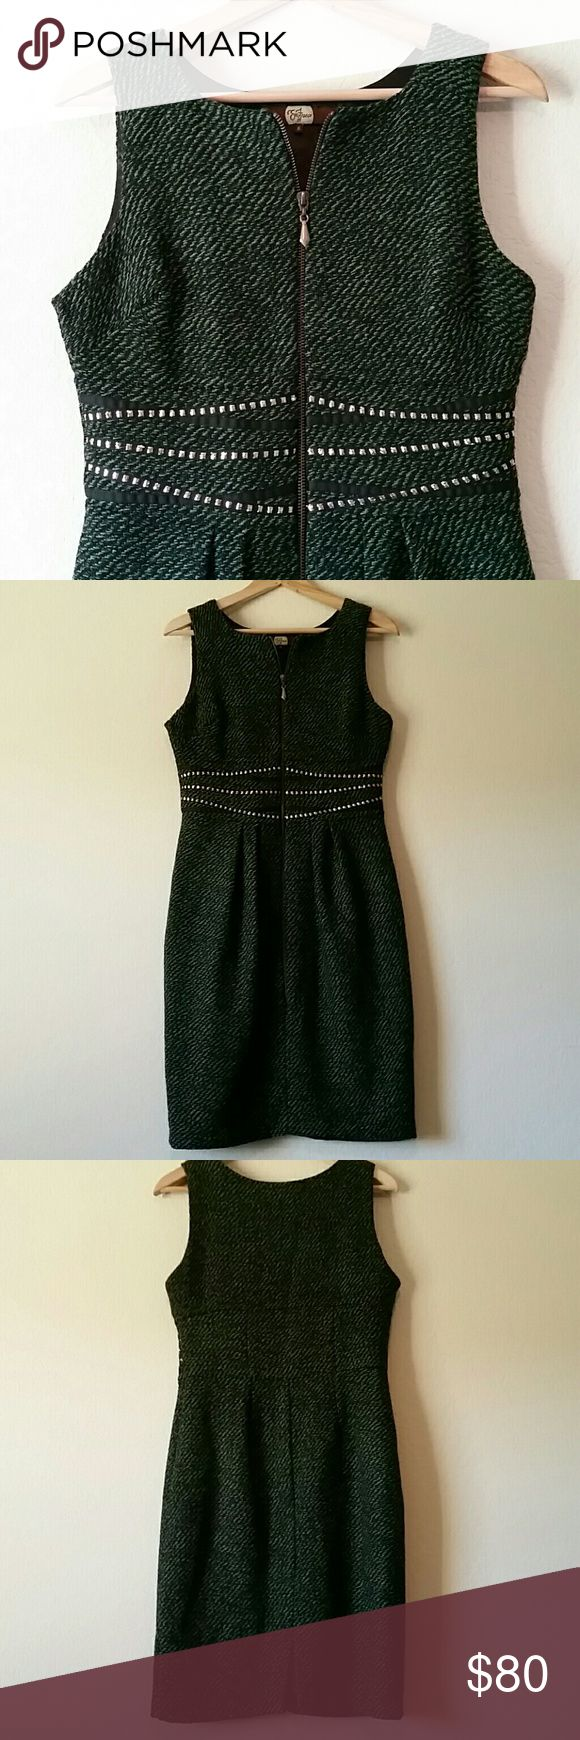 """Eva Franco Green Tweed Zip Dress size 6 Gorgeous green tweed with exposed front zipper and embroidered waist. Measures approximately 17"""" from pit to pit, 15"""" flat across waist, 37.5"""" long. Eva Franco Dresses"""